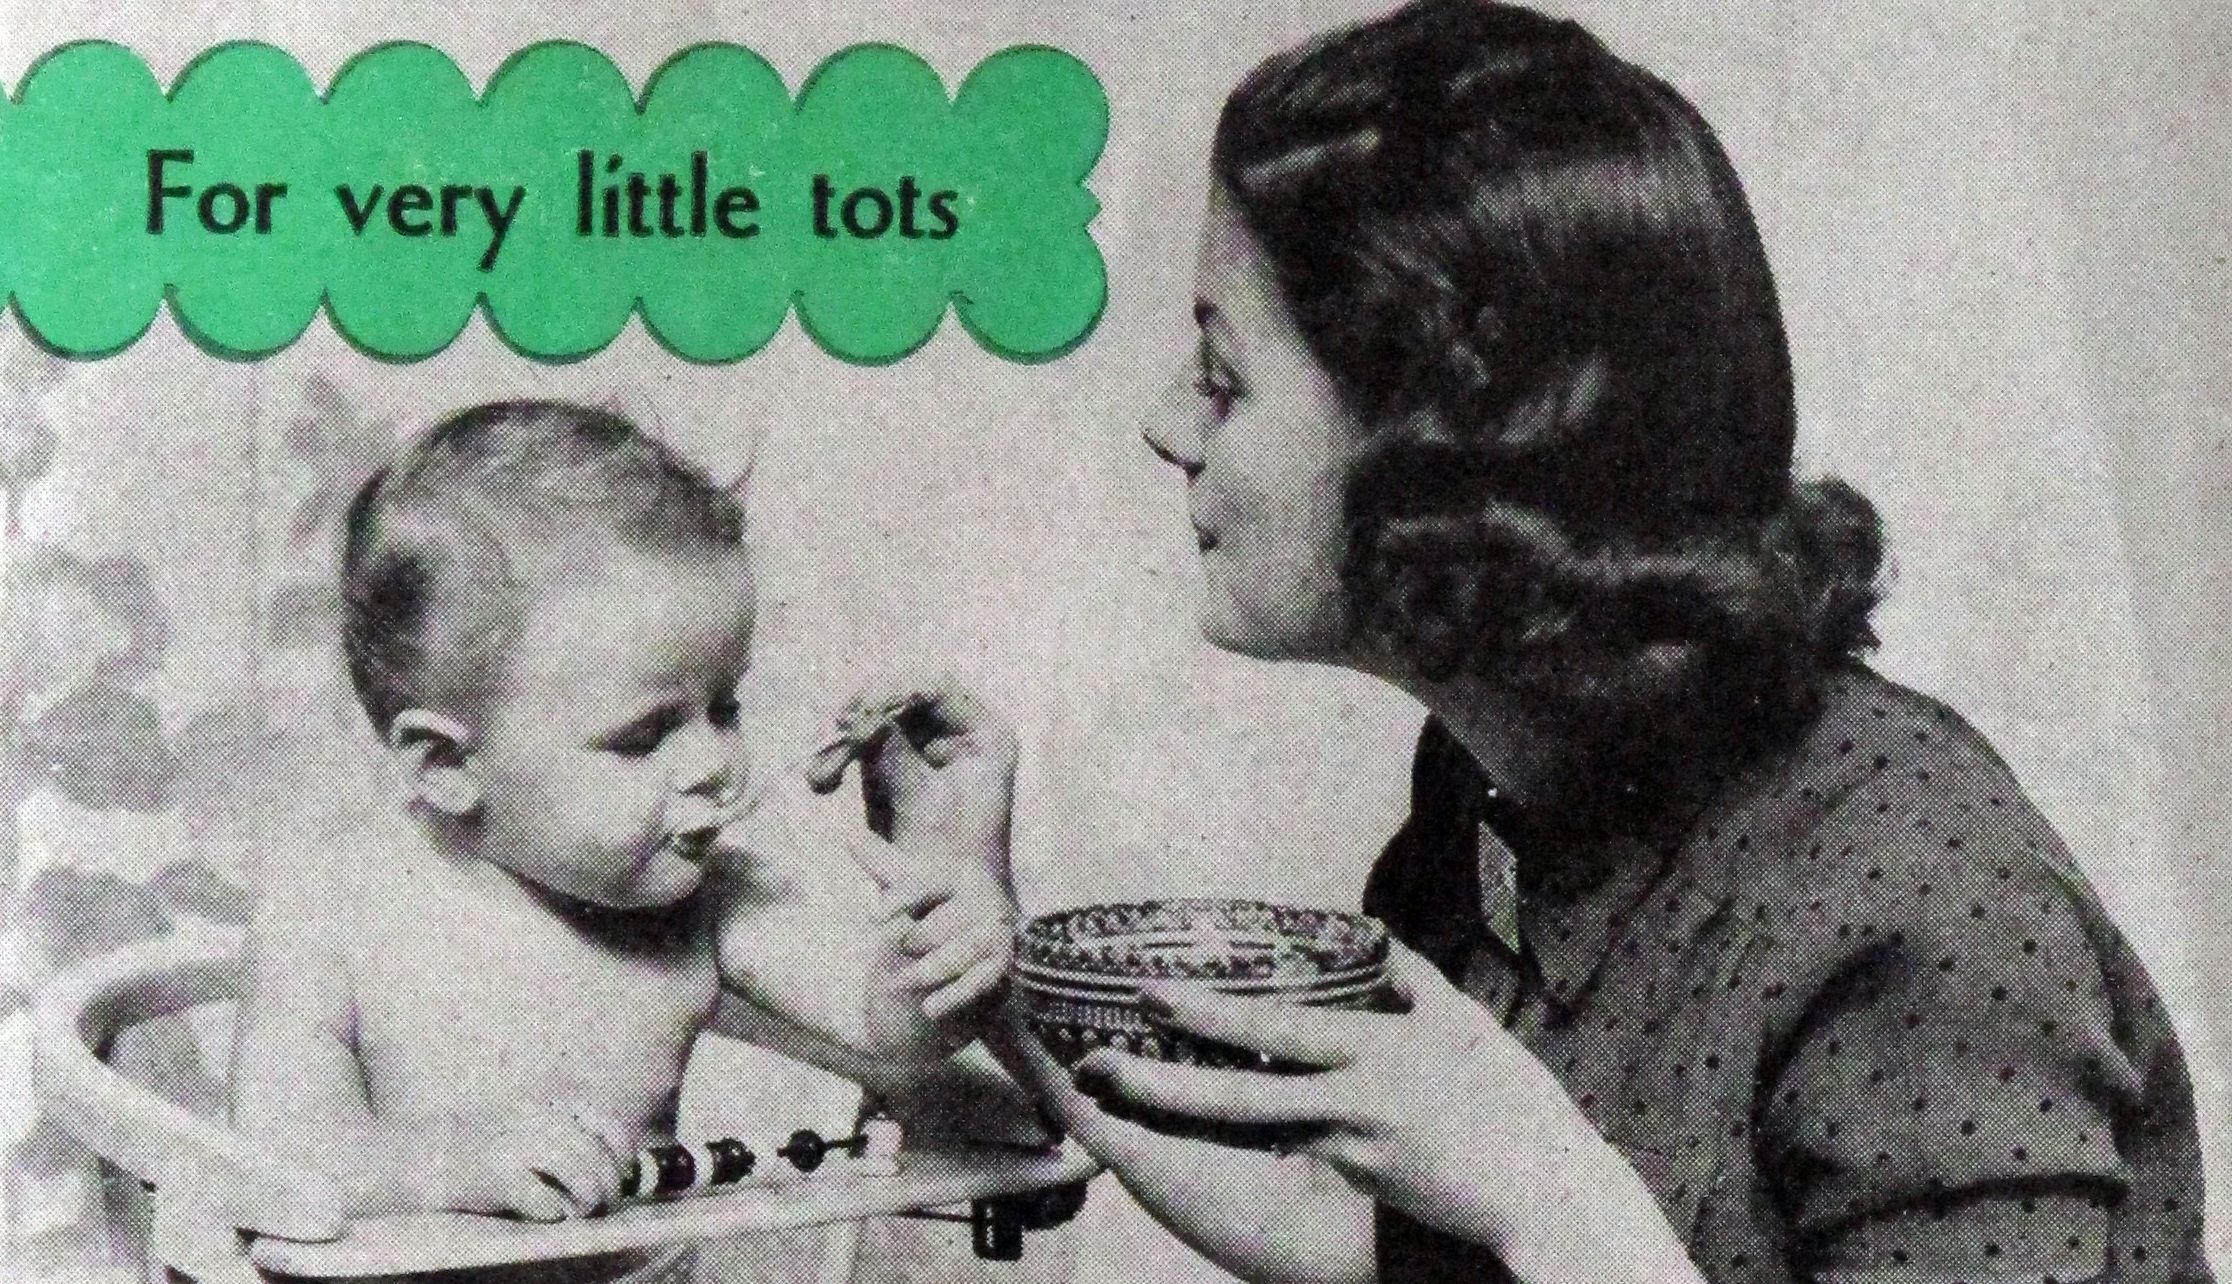 Image from 'Mother... what about our diet? - milk desserts for growing children'. Pamphlet about rennet custard desserts.  US, 1948